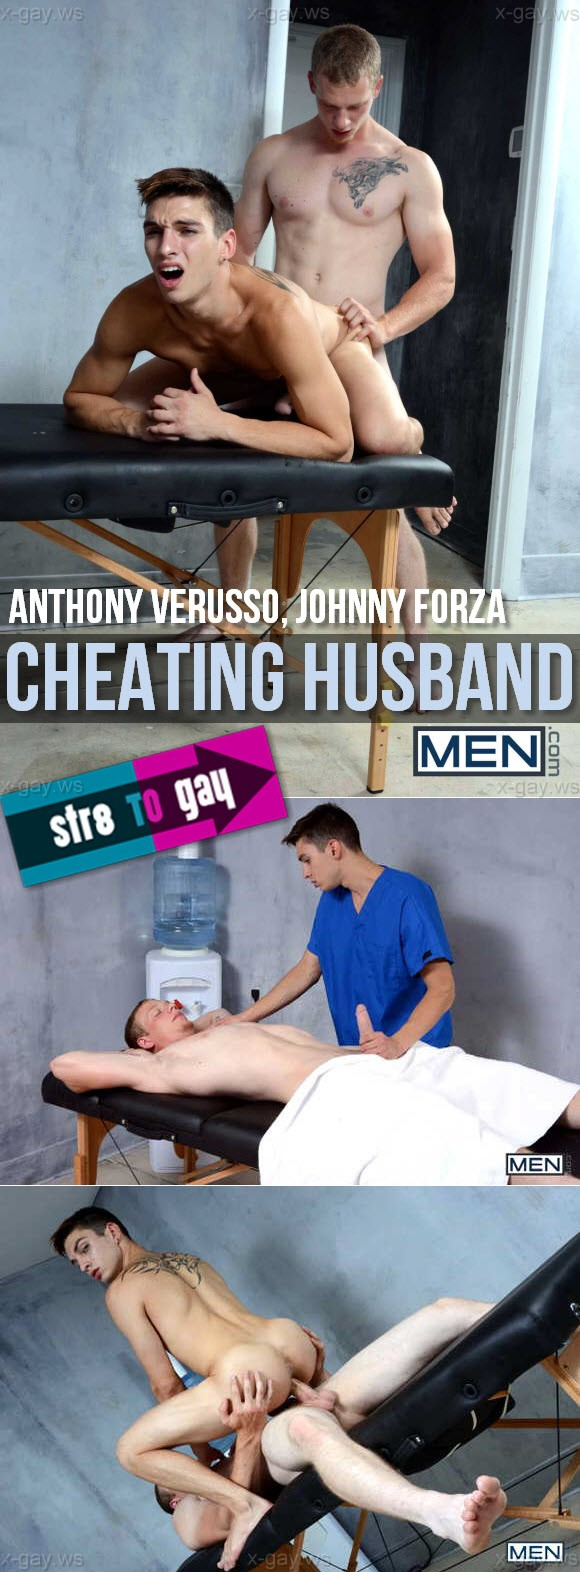 MEN – Str8 to Gay – Cheating Husband, Part 1: Anthony Verusso & Johnny Forza